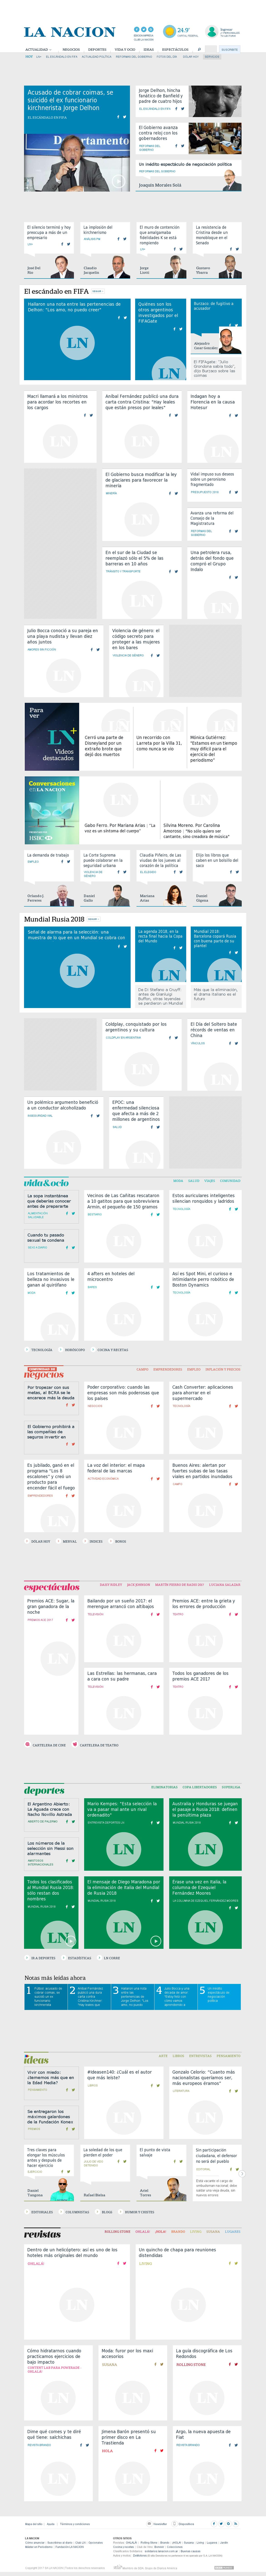 lanacion.com at Wednesday Nov. 15, 2017, 8:08 a.m. UTC